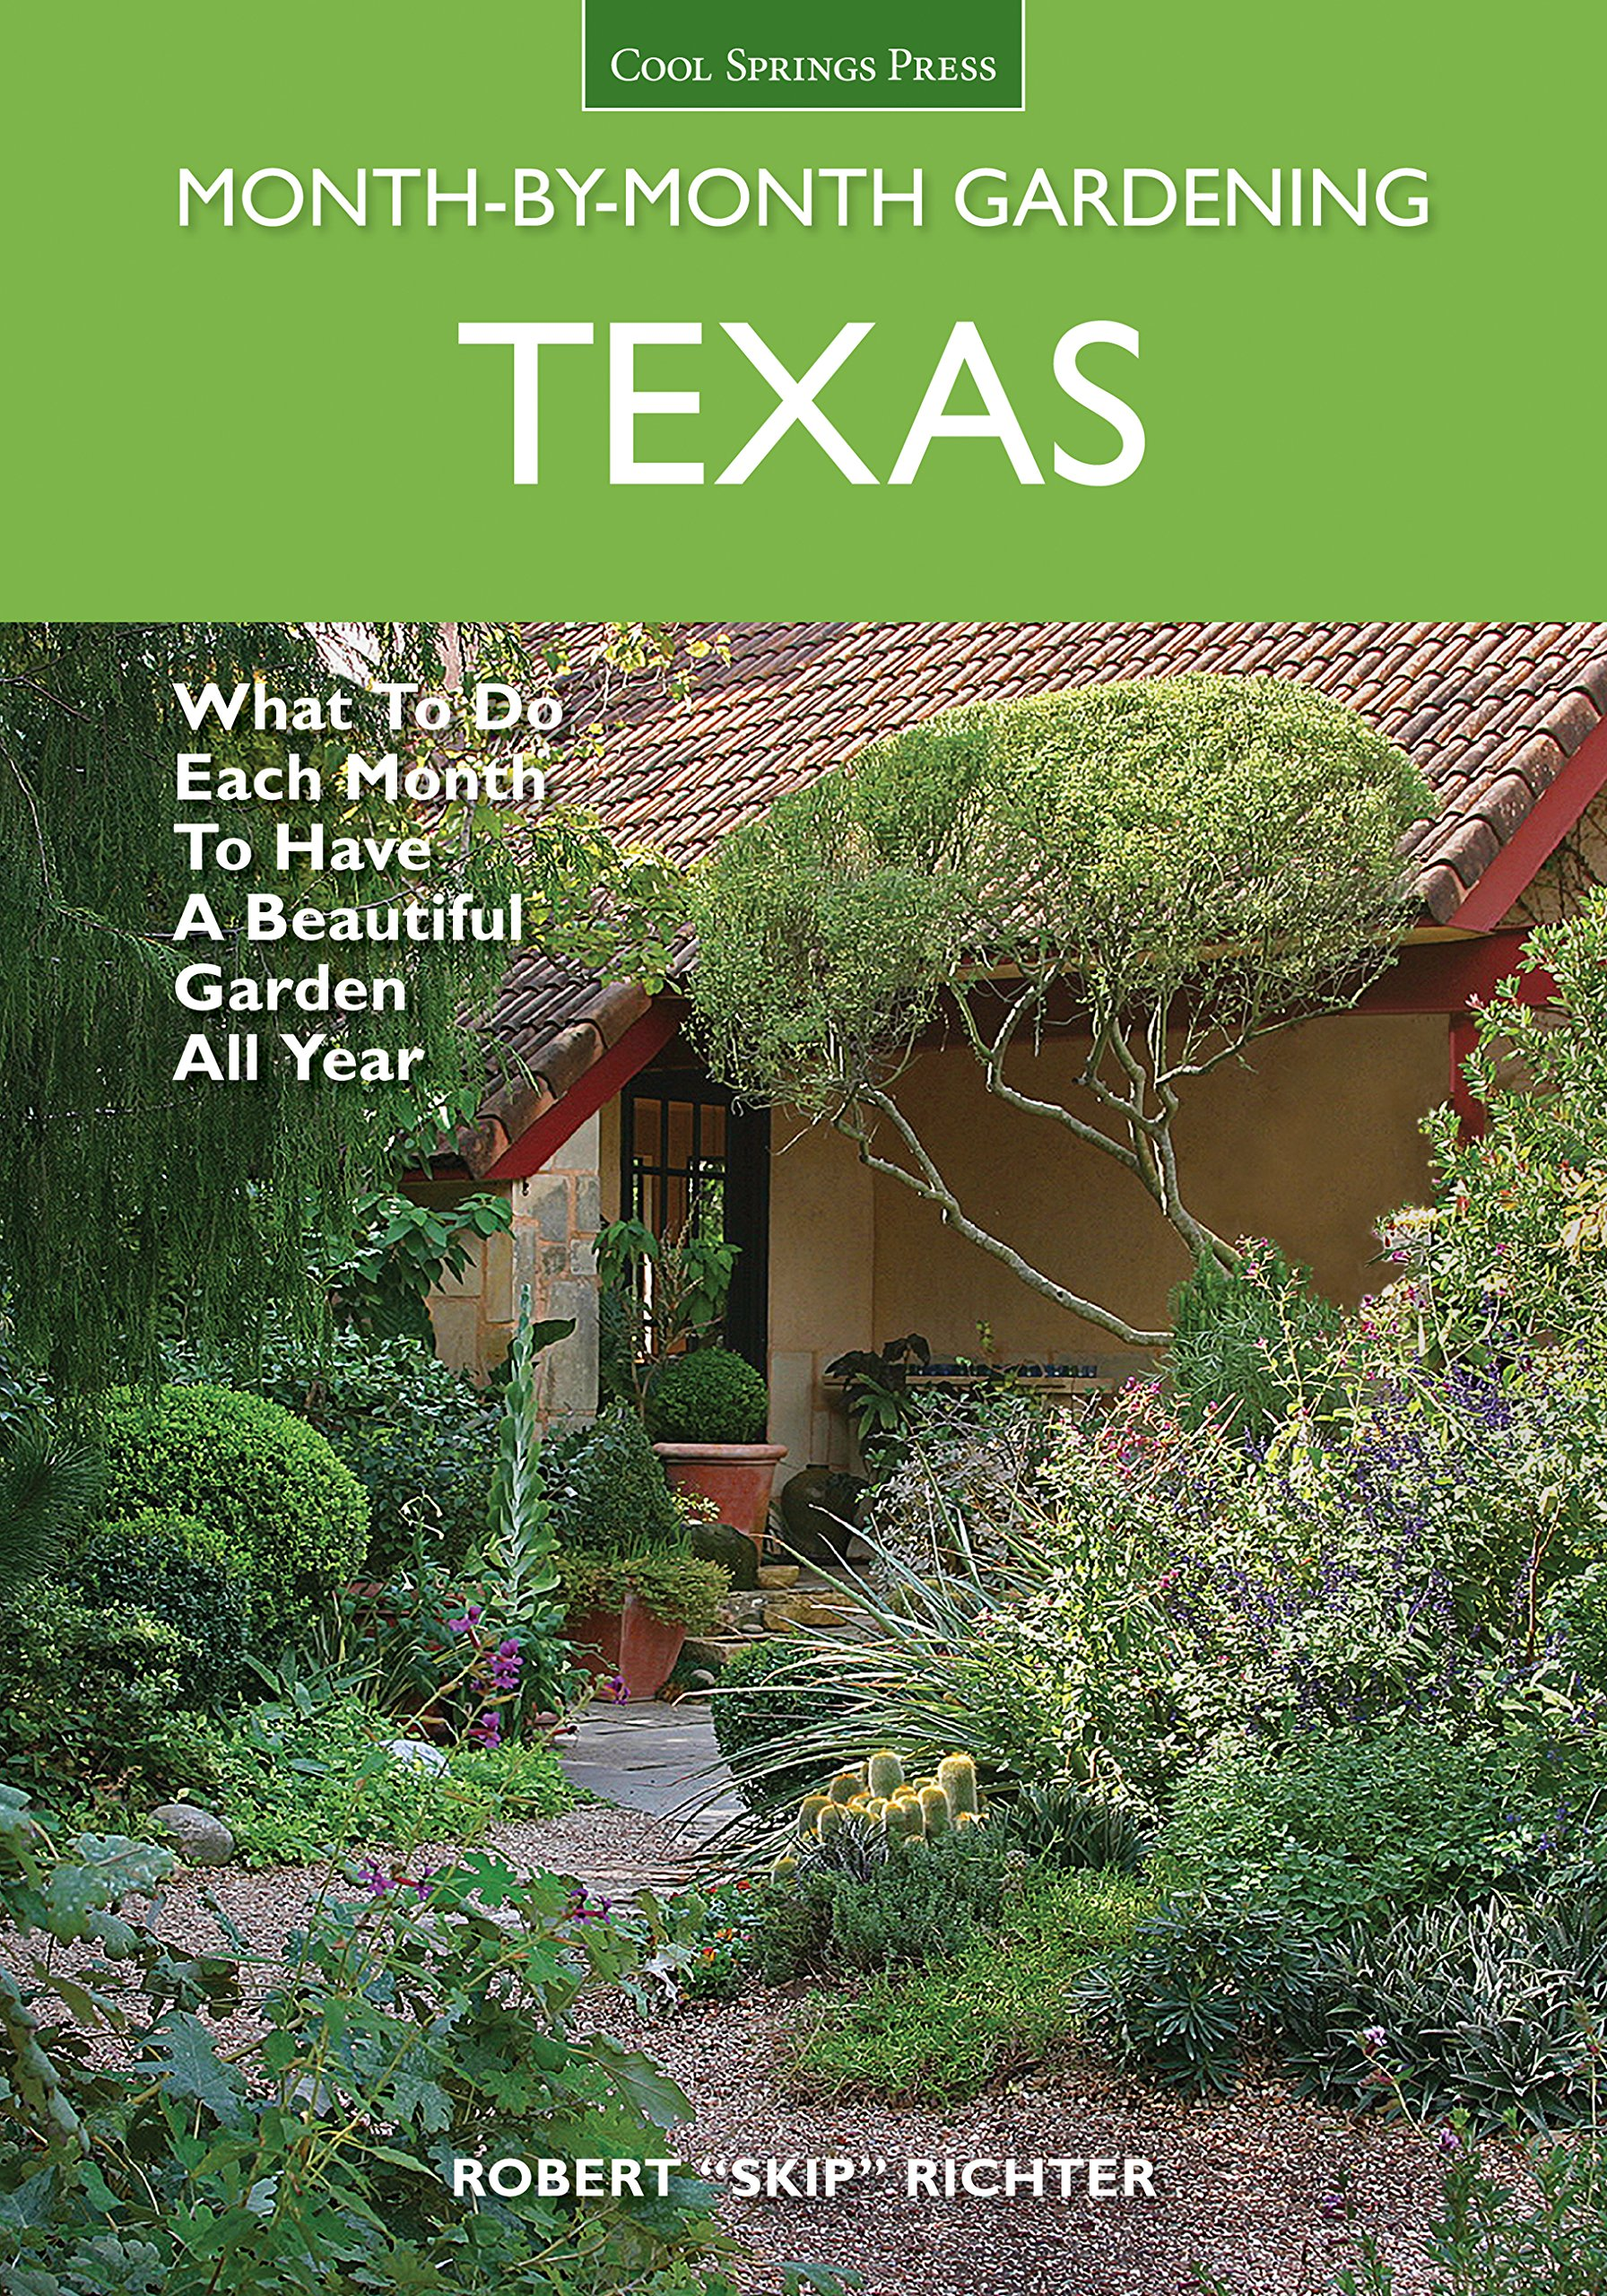 Texas Month By Month Gardening What To Do Each Month To Have A